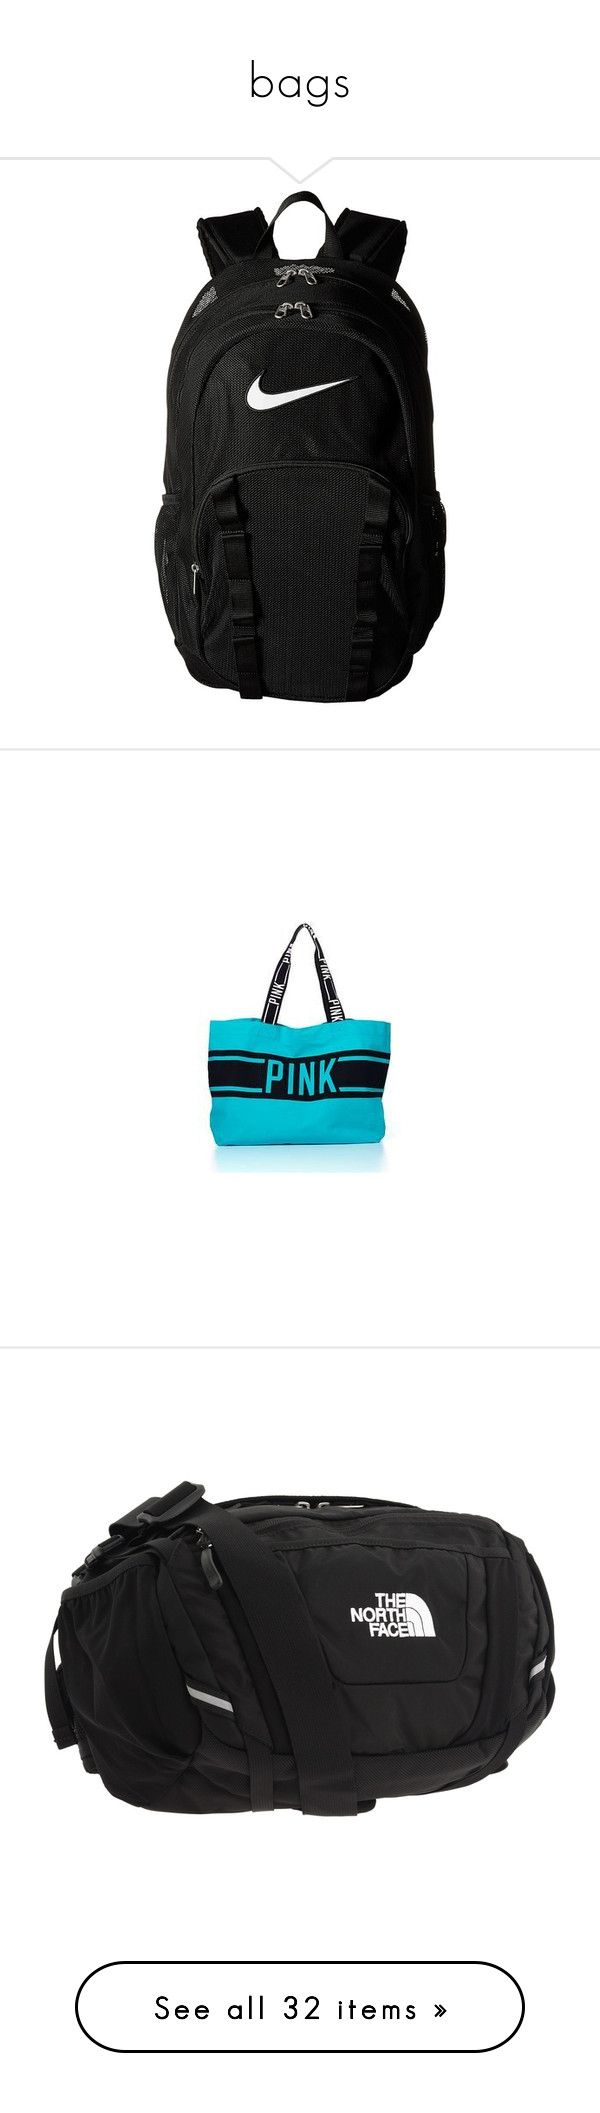 """""""bags"""" by taylorvel ❤ liked on Polyvore featuring bags, backpacks, nike, day pack backpack, mesh backpack, zip bags, clear zipper bags, black and white backpack, handbags and accessories"""